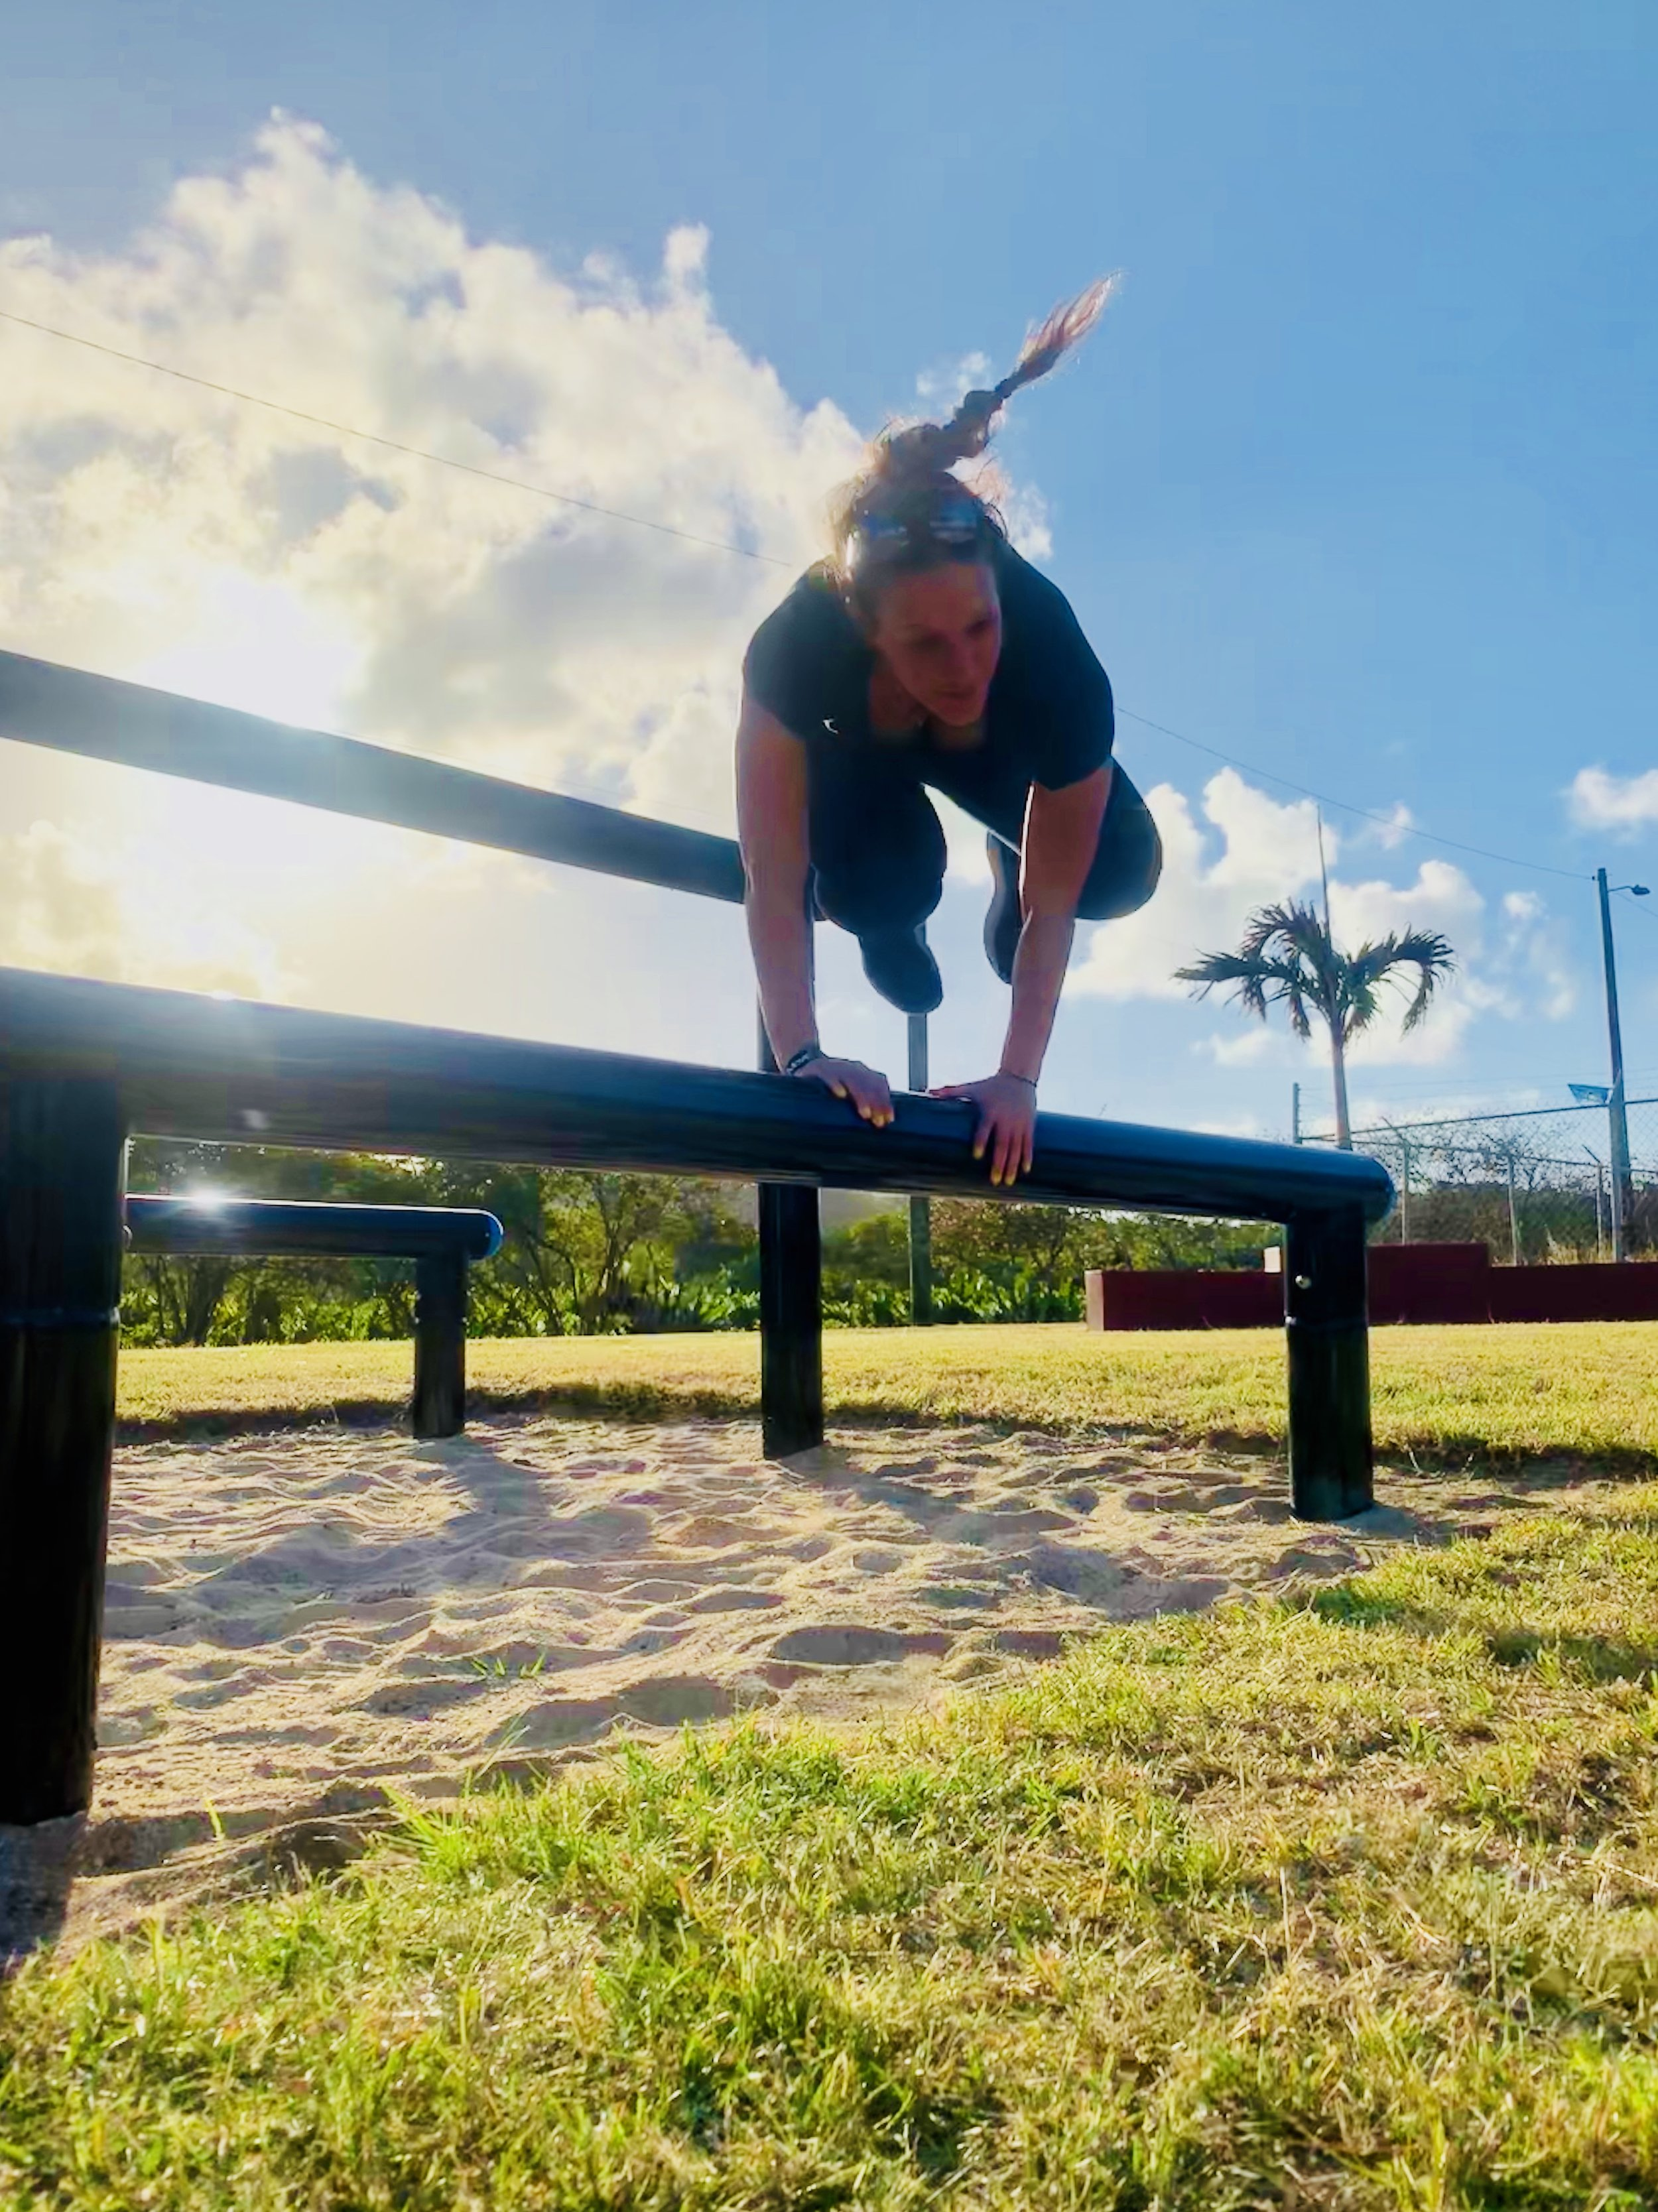 Agility Obstacle Course Workouts